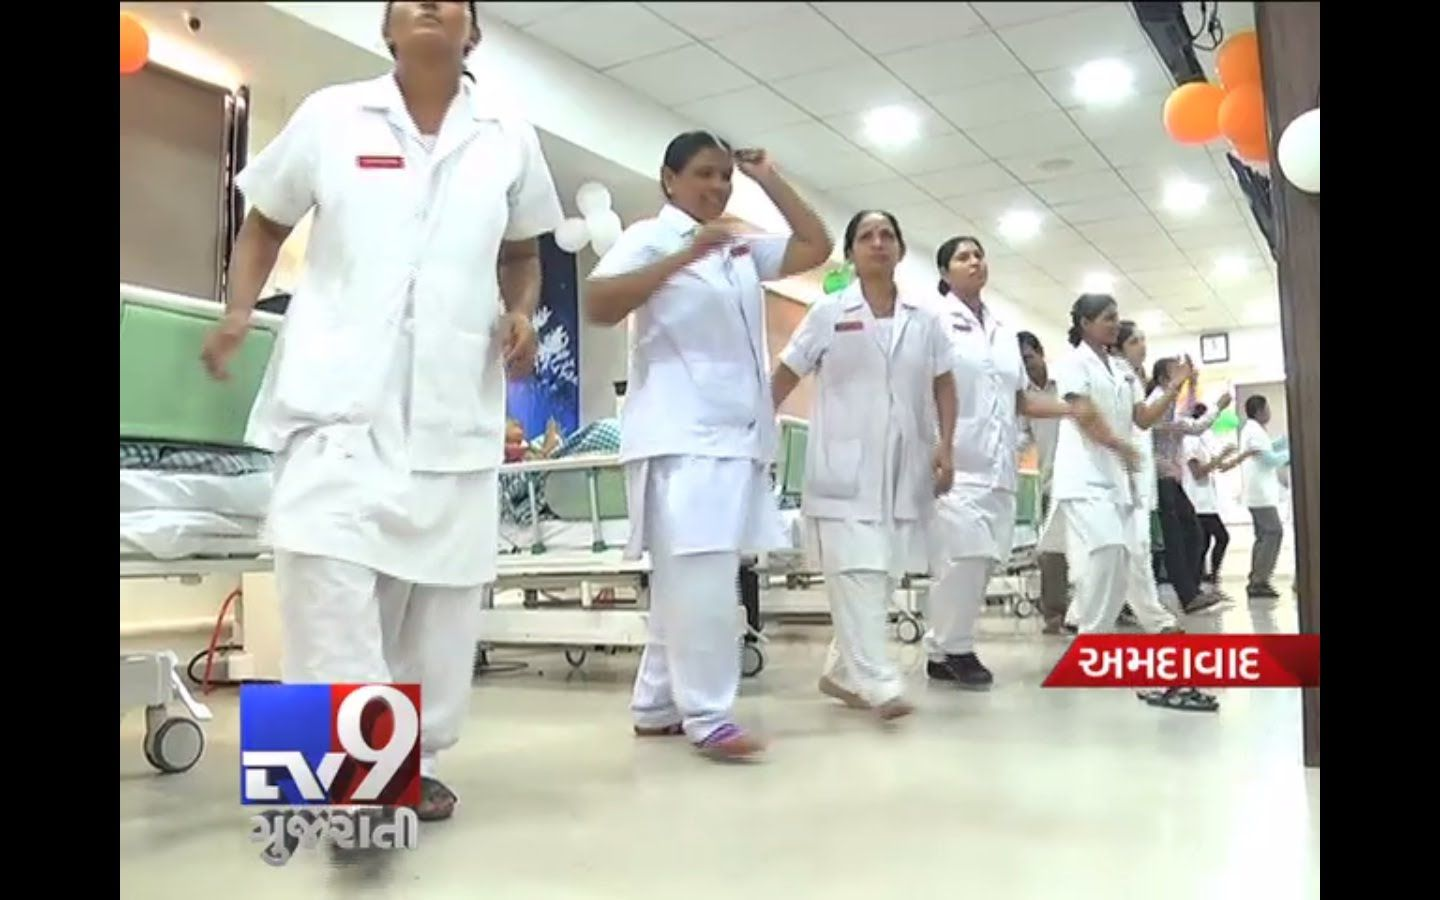 Ahmedabad : After a video surfaced showing medical staff of